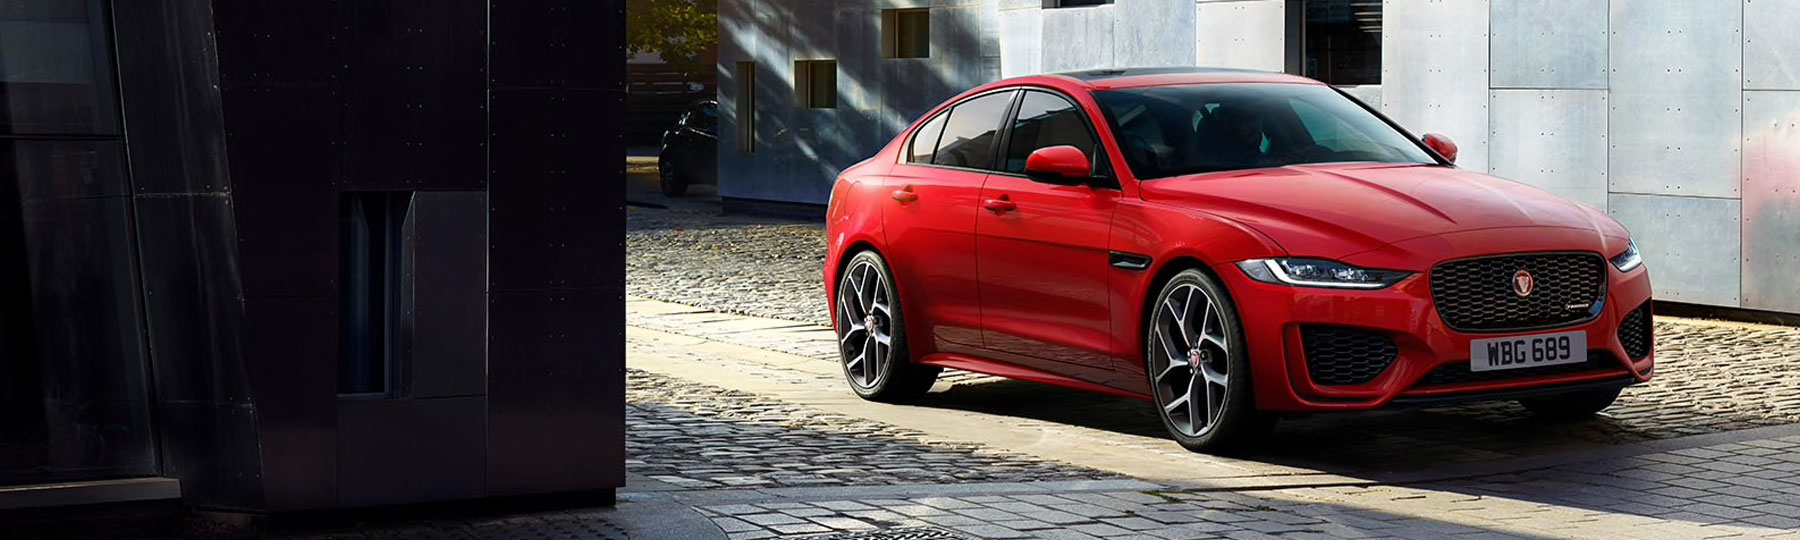 New Jaguar XE Personal Contract Hire Offer